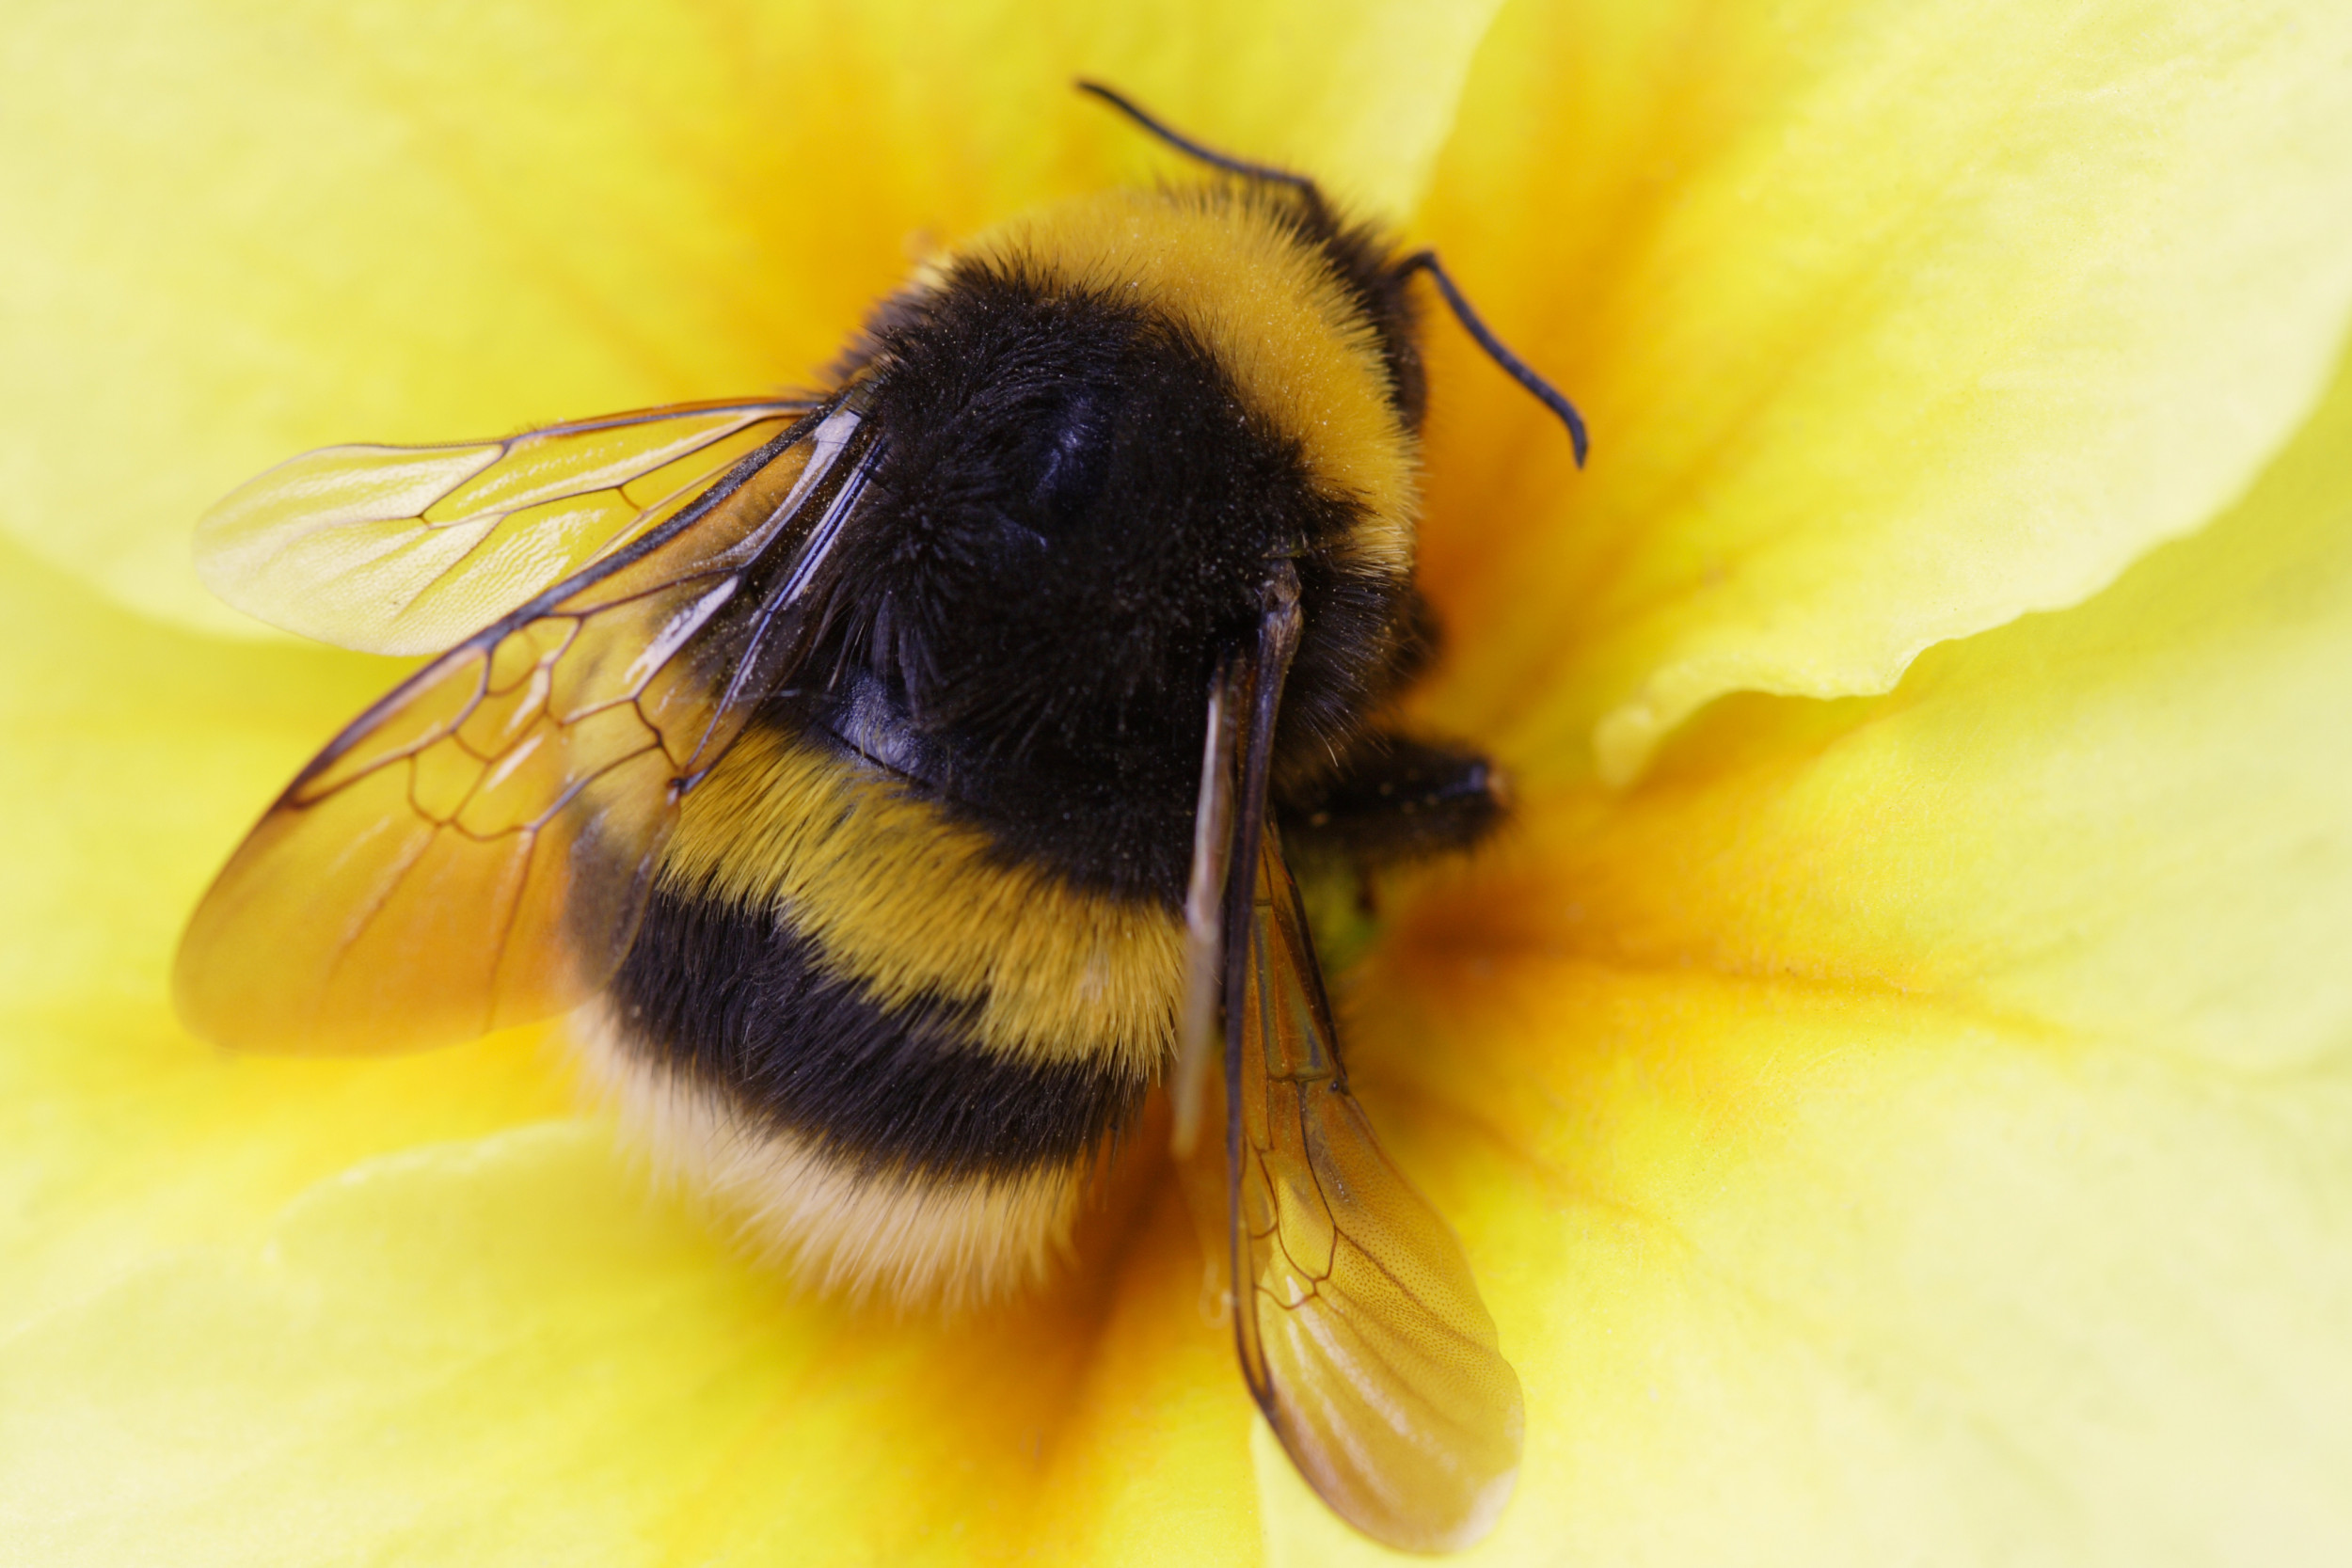 Bumble Bees Give up Sleep to Care for Young, Even When ...